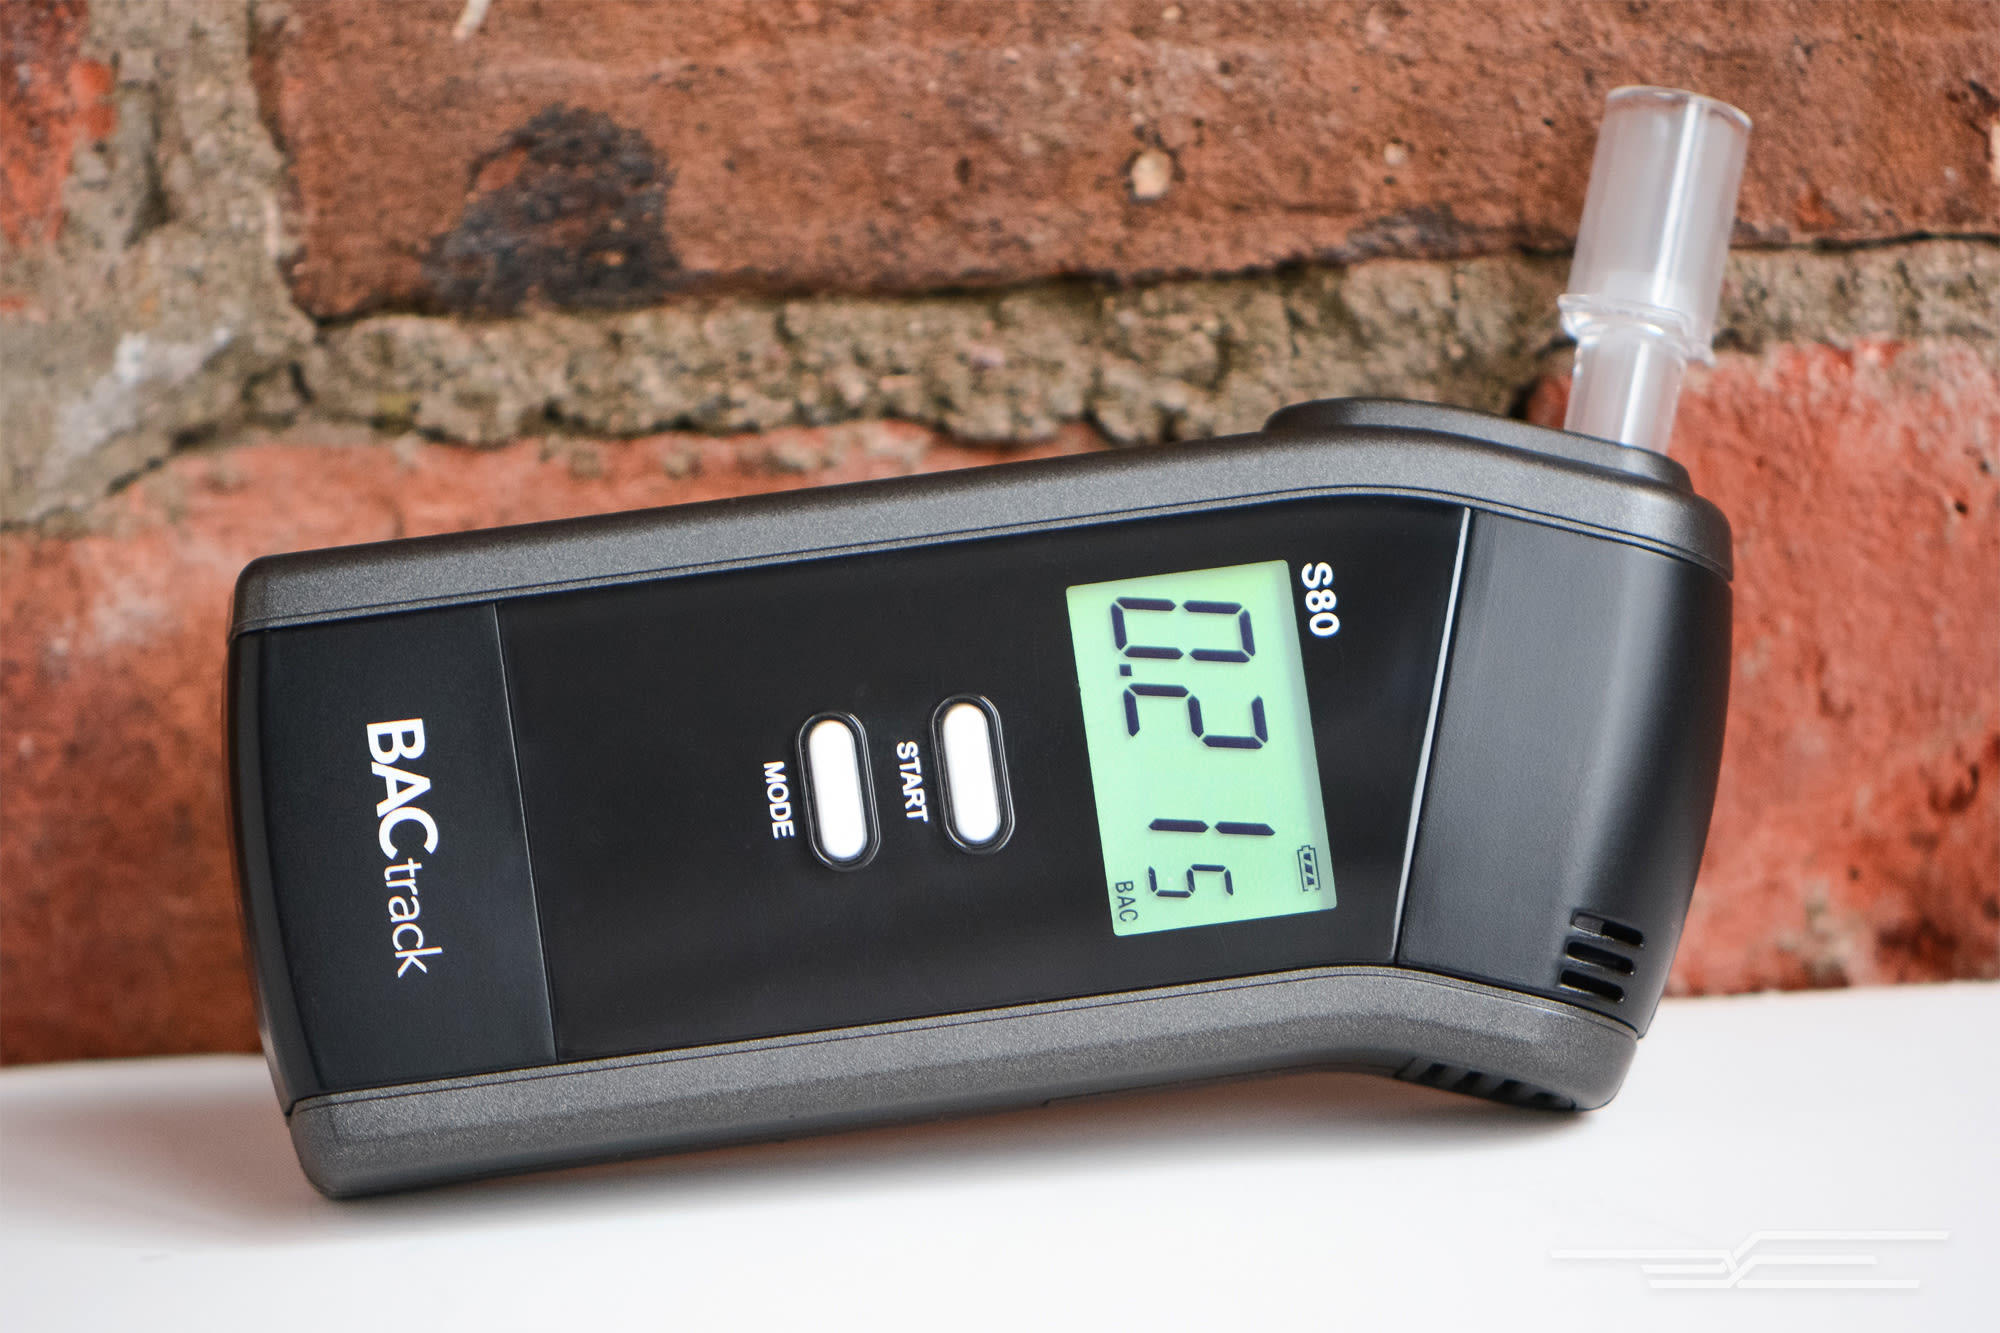 The best personal breathalyzer